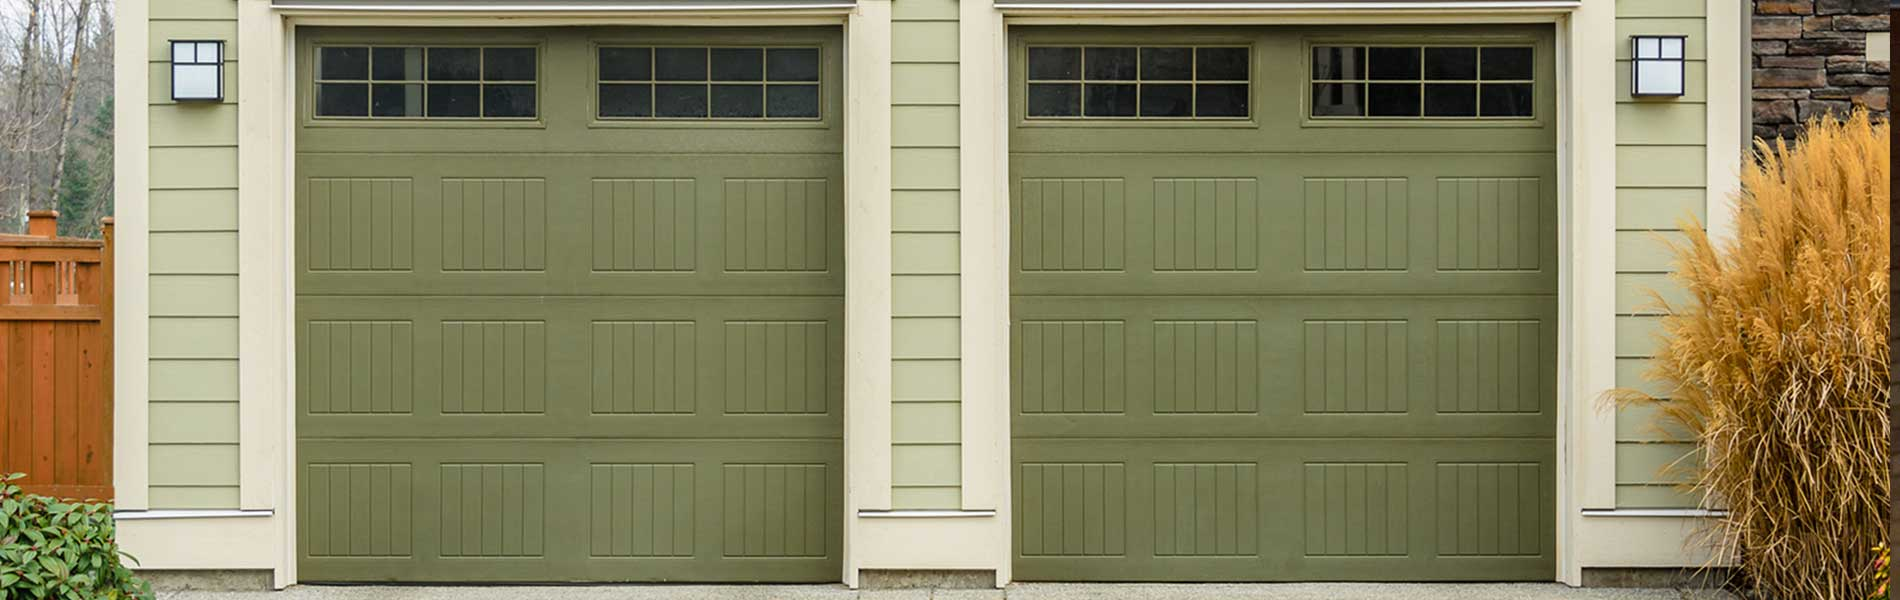 Garage Door 24 Hours Repair, Cross Plains, TN 615-450-1816